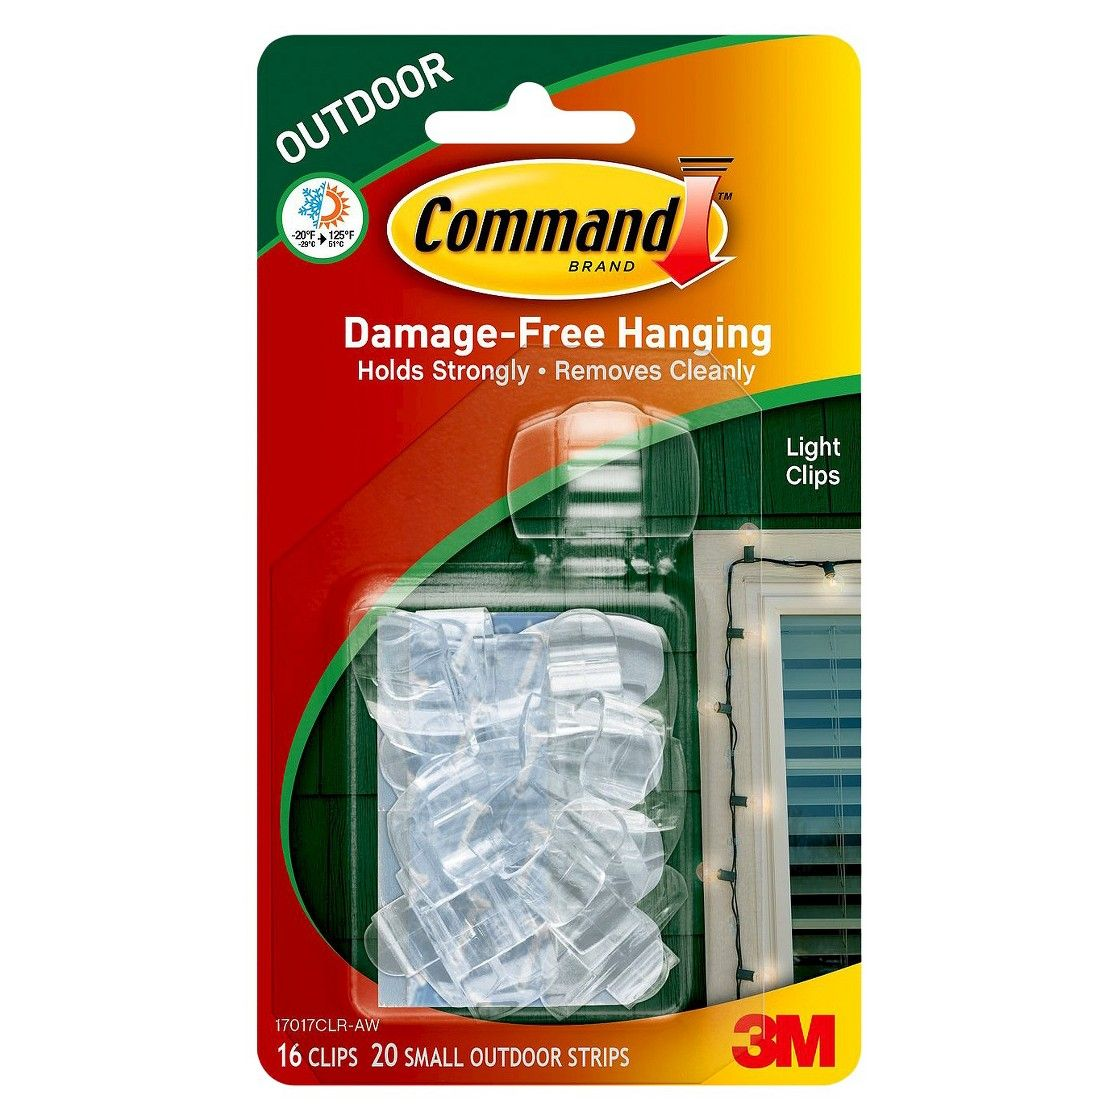 Command 16 Clips 20 Strips Outdoor Light Clips With Foam All Weather Strips Decorative Hooks Clear With Images Exterior Christmas Lights